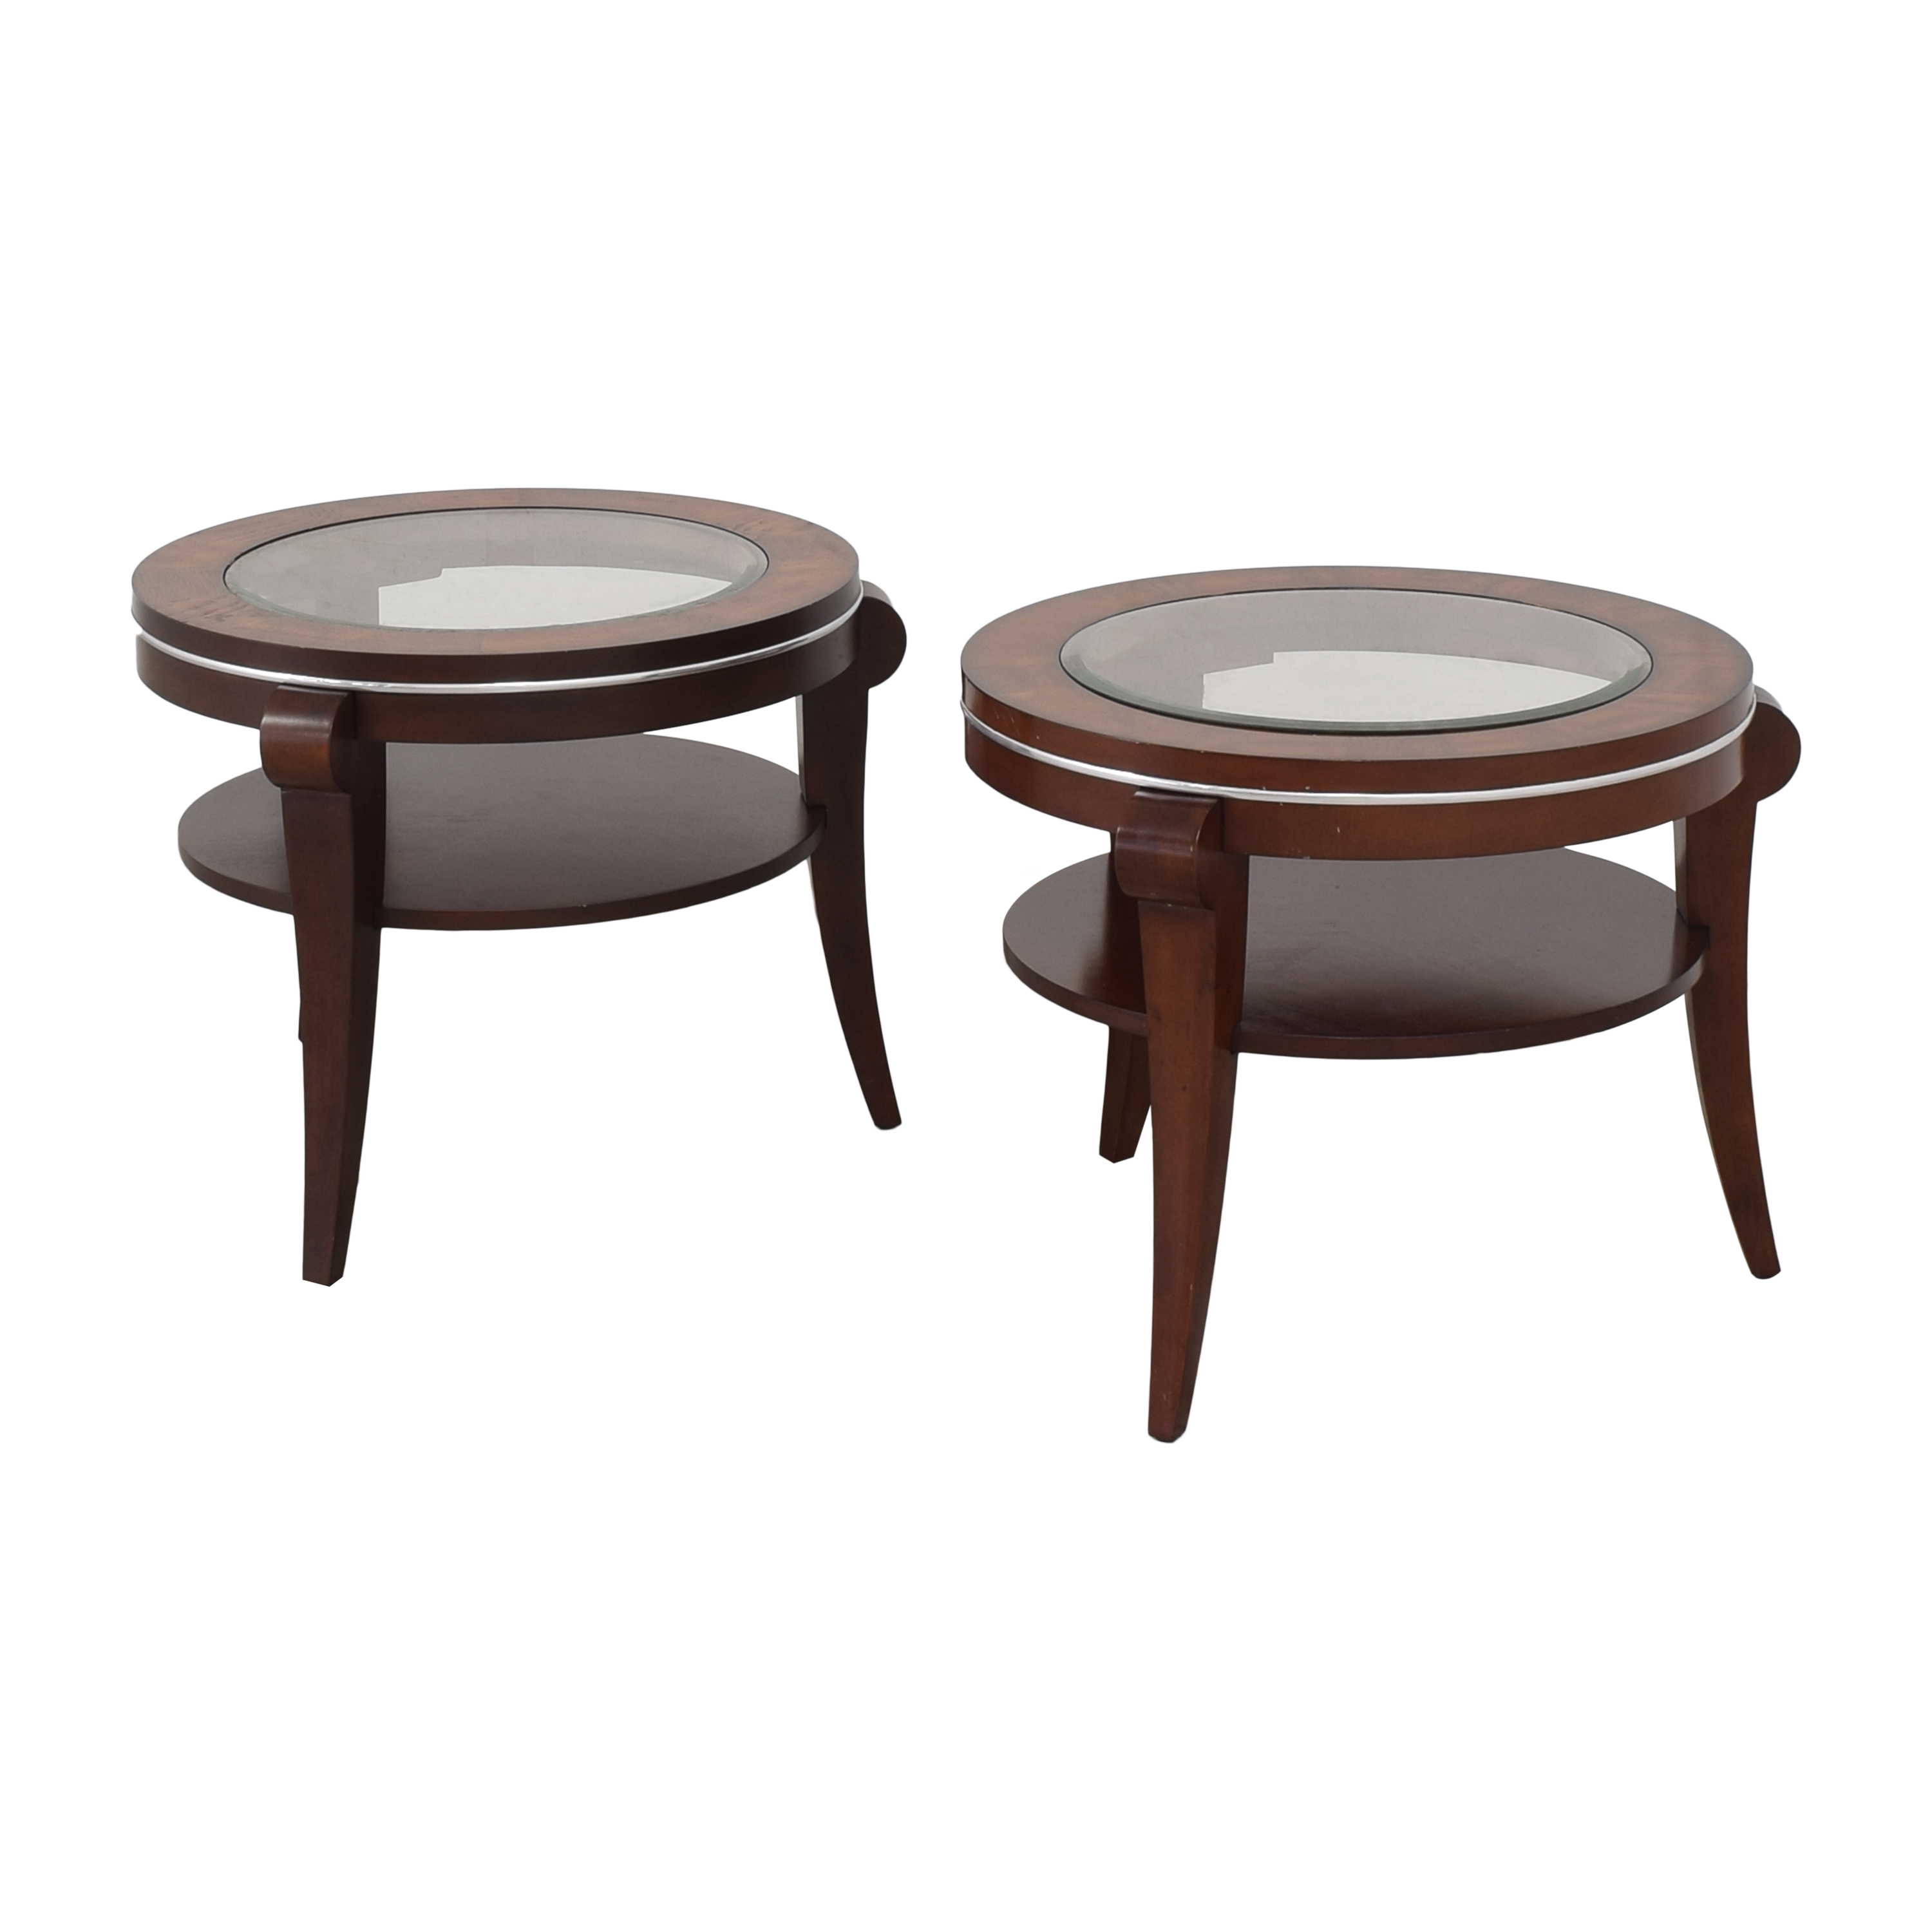 shop Raymour & Flanigan Round End Tables Raymour & Flanigan End Tables